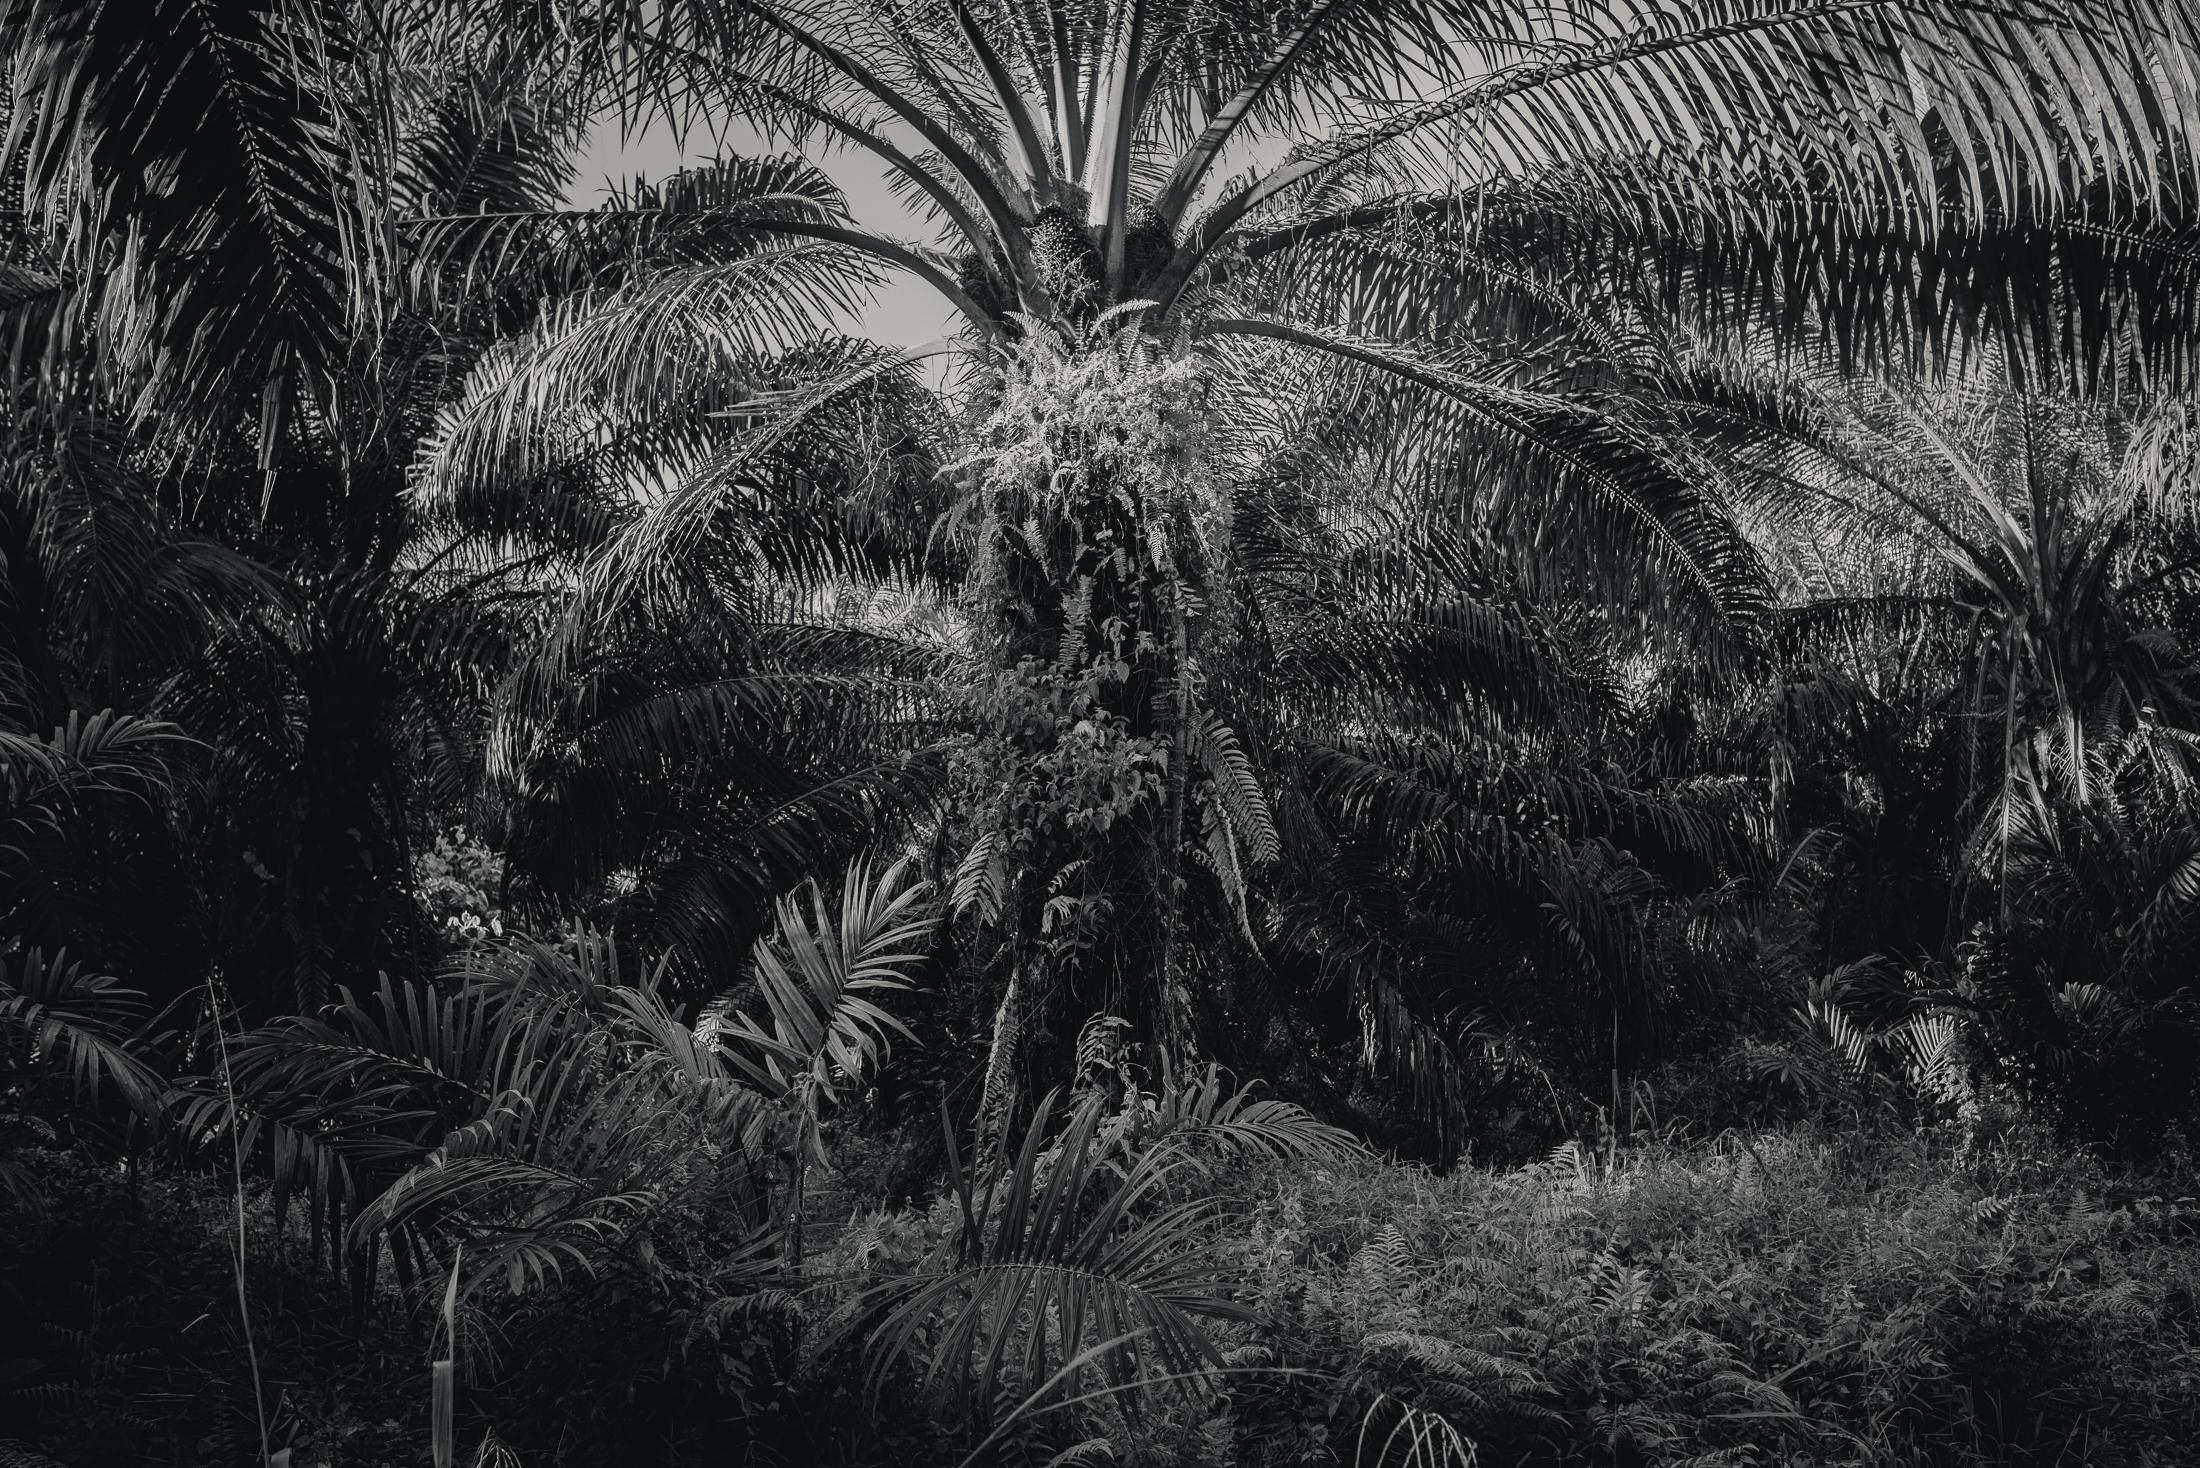 An Oil Palm Plantation in Borneo, Malaysia. Sarawak is the largest of thirteen states that make up Malaysia and is situated on the island of Borneo, which is shared between Malaysia, Indonesia and Brunei and contains some of the oldest tropical rainforest in the world. Agriculture, logging, mining and oil and gas extraction dominate Borneo's economy. Plans for multiple hydro-electric projects in Sarawak have drawn controversy, as have the much greater publicised issues of palm oil production and logging, both drivers of deforestation. Malaysia is the second largest producer of Palm oil after Indonesia. According to the Malaysian Palm Oil Board, as of December 2012, palm oil plantation accounted for a total land use of 51,000 km2 in Malaysia. It makes up 77% of agricultural land or about 15% of total land area in Malaysia. Criticism of the Palm oil industry has focused on deforestation, monoculture farming practices and labour exploitation. Logging, along with Palm oil plantations, are a highly visible cause of environmental damage. Crude logging techniques, illegal cutting, construction of logging roads and timber camps all contribute to a depreciation of ecosystems and destruction of habitat upon which local indigenous people and wildlife depend. The proposed Baram dam project was cancelled in mid 2015 by Chief Minister Tan Sri Adenan Satem. With the death of Adenan Satem in early 2017, Sarawak's indigenous community hopes the new Chief Minister Datuk Amar Abang Johari Openg will not re-instate the dam's construction. About 20,000 people in 30 villages would lose their homes or lands to the flooding, if the dam was to be built. Save Rivers, a conservation group opposed to the dam has proposed smaller-scale hydroelectric and solar projects as an alternative to large scale mega dam projects.